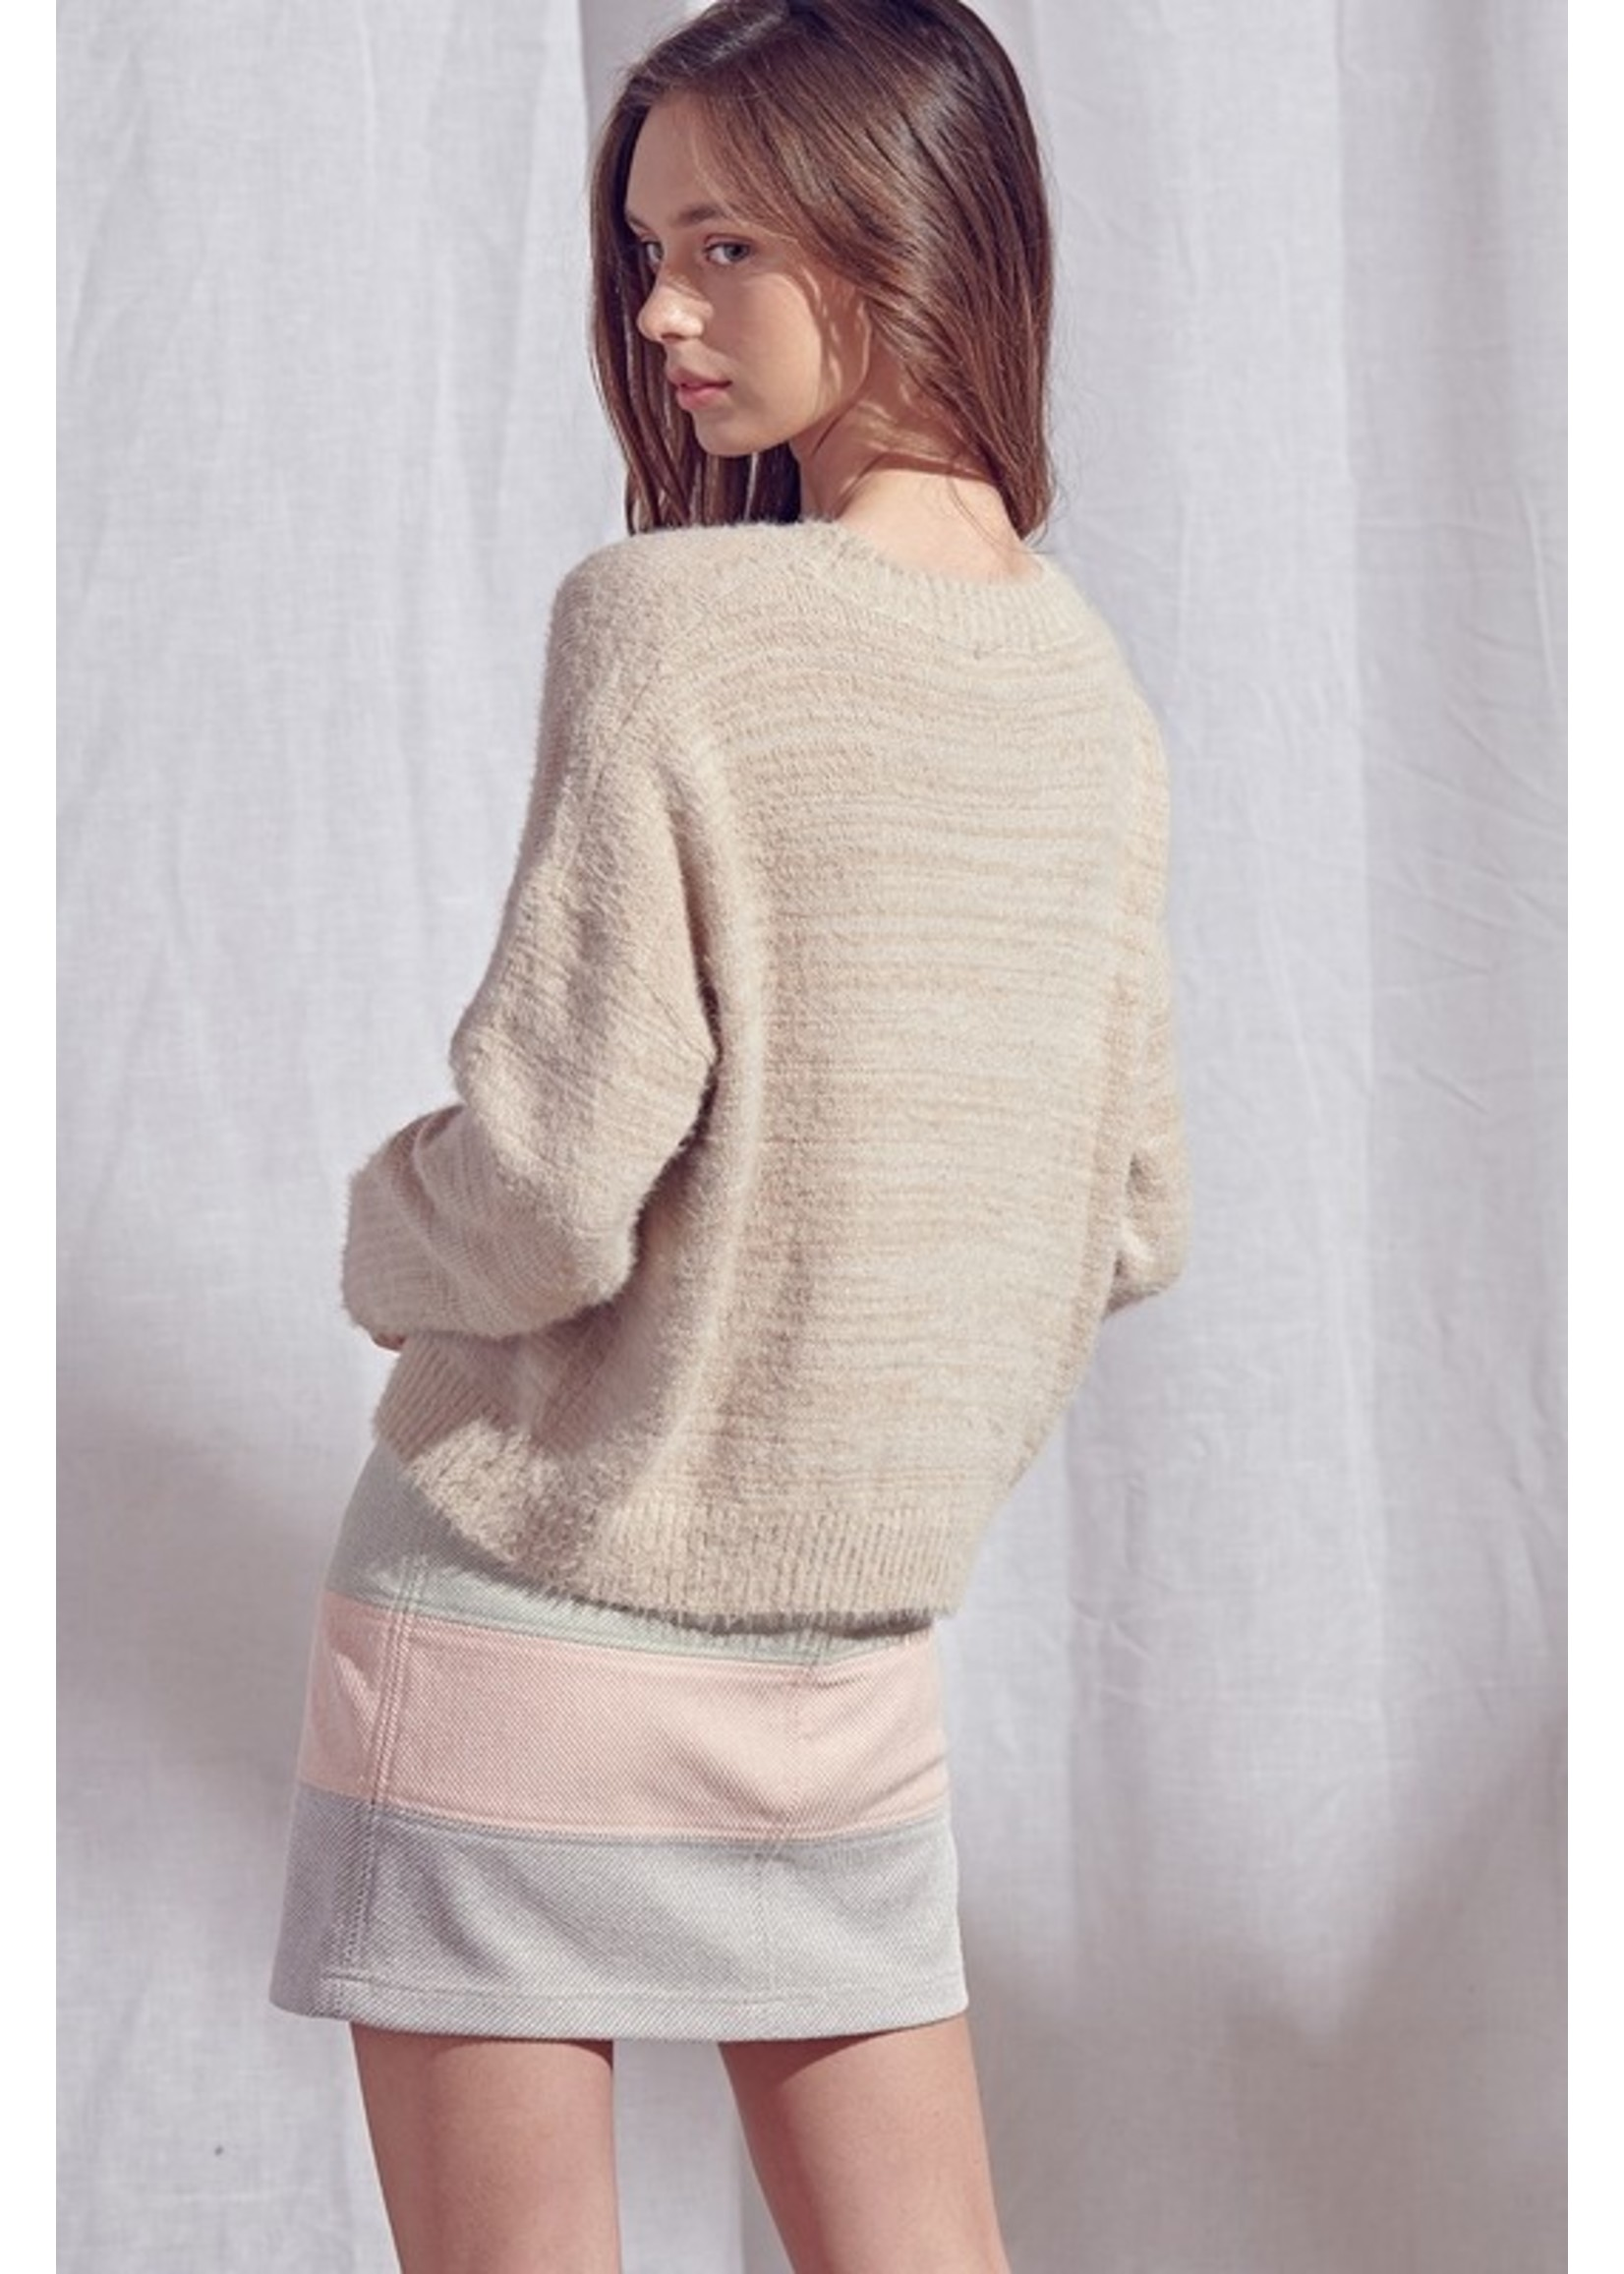 Storia Cable Knit Fuzzy Sweater - JT2971